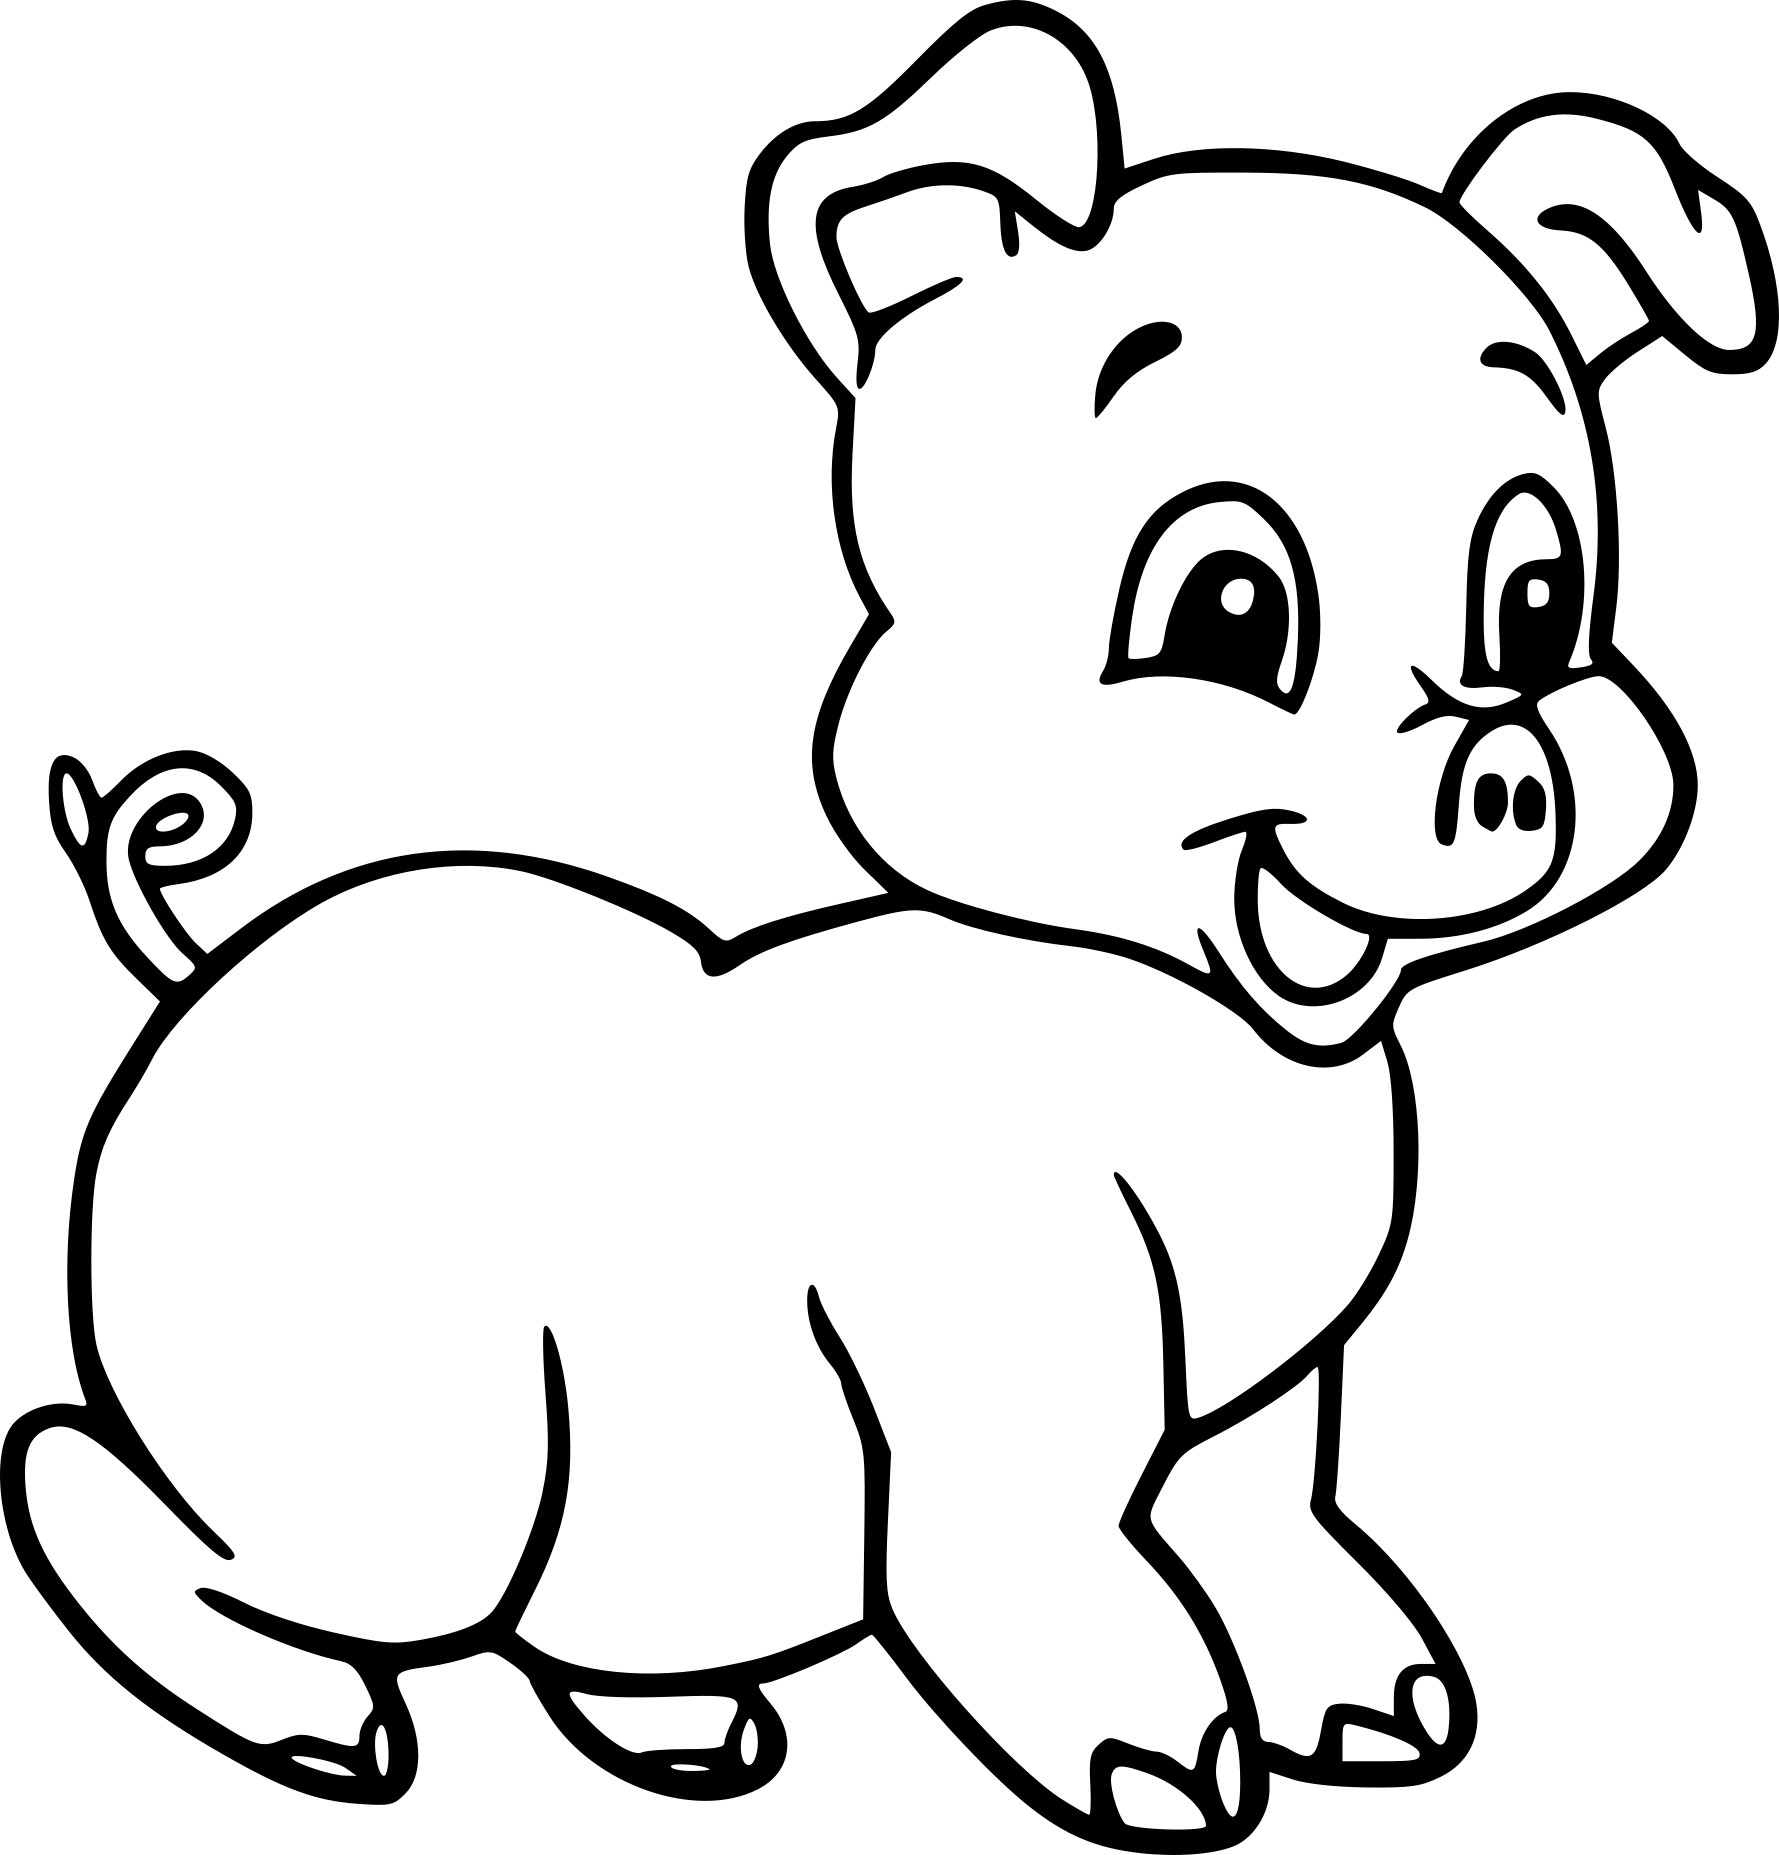 Bebe Cochon Dessin on animal coloring pages